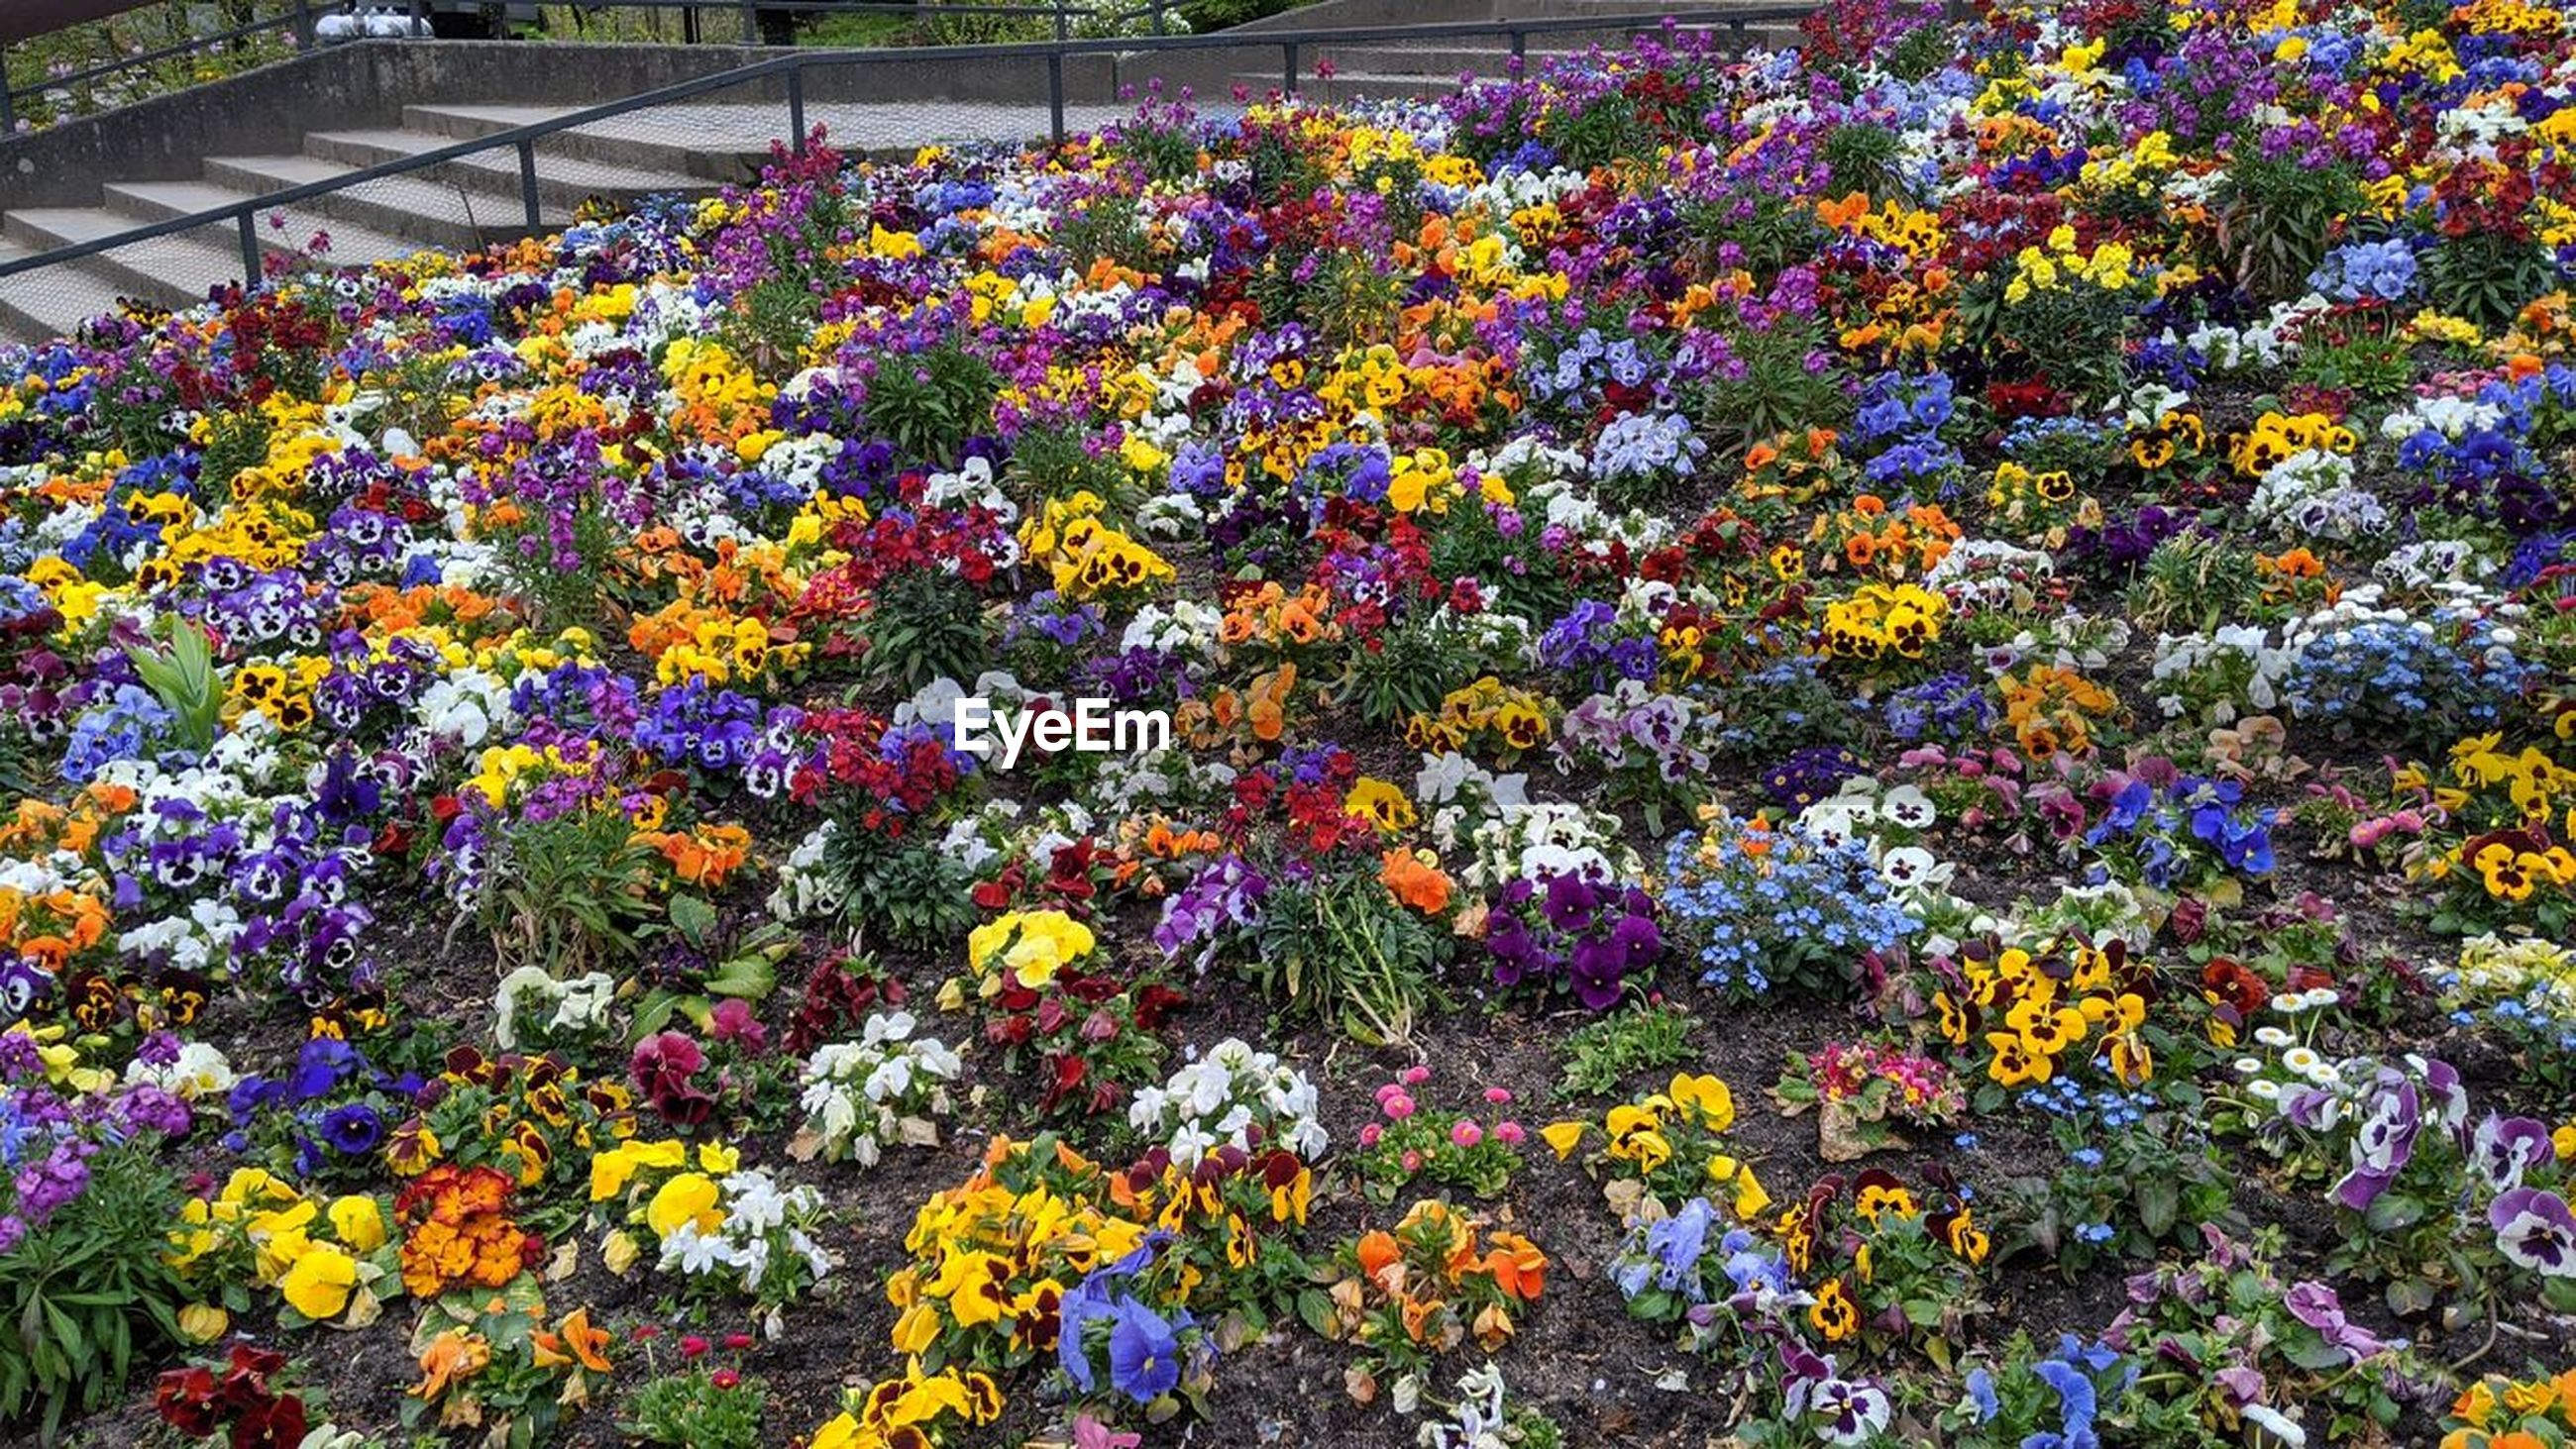 flowering plant, flower, plant, multi colored, freshness, beauty in nature, fragility, nature, growth, day, no people, abundance, high angle view, variation, outdoors, garden, flowerbed, yellow, botany, park, springtime, close-up, flower head, wildflower